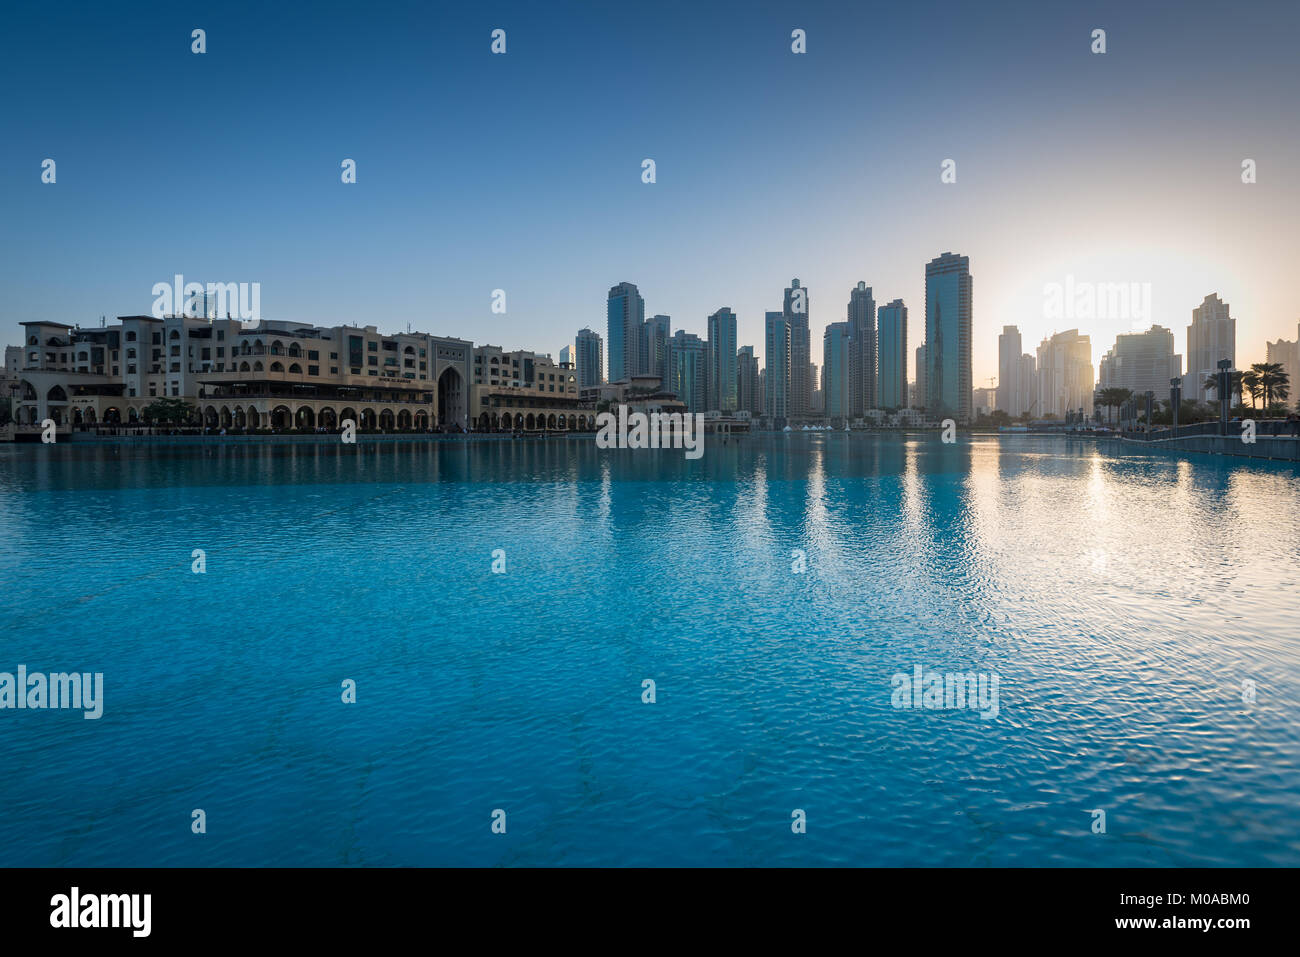 Souk Al Bahar, a shopping mall near the Dubai Mall in Dubai, United Arab Emirates - Stock Image